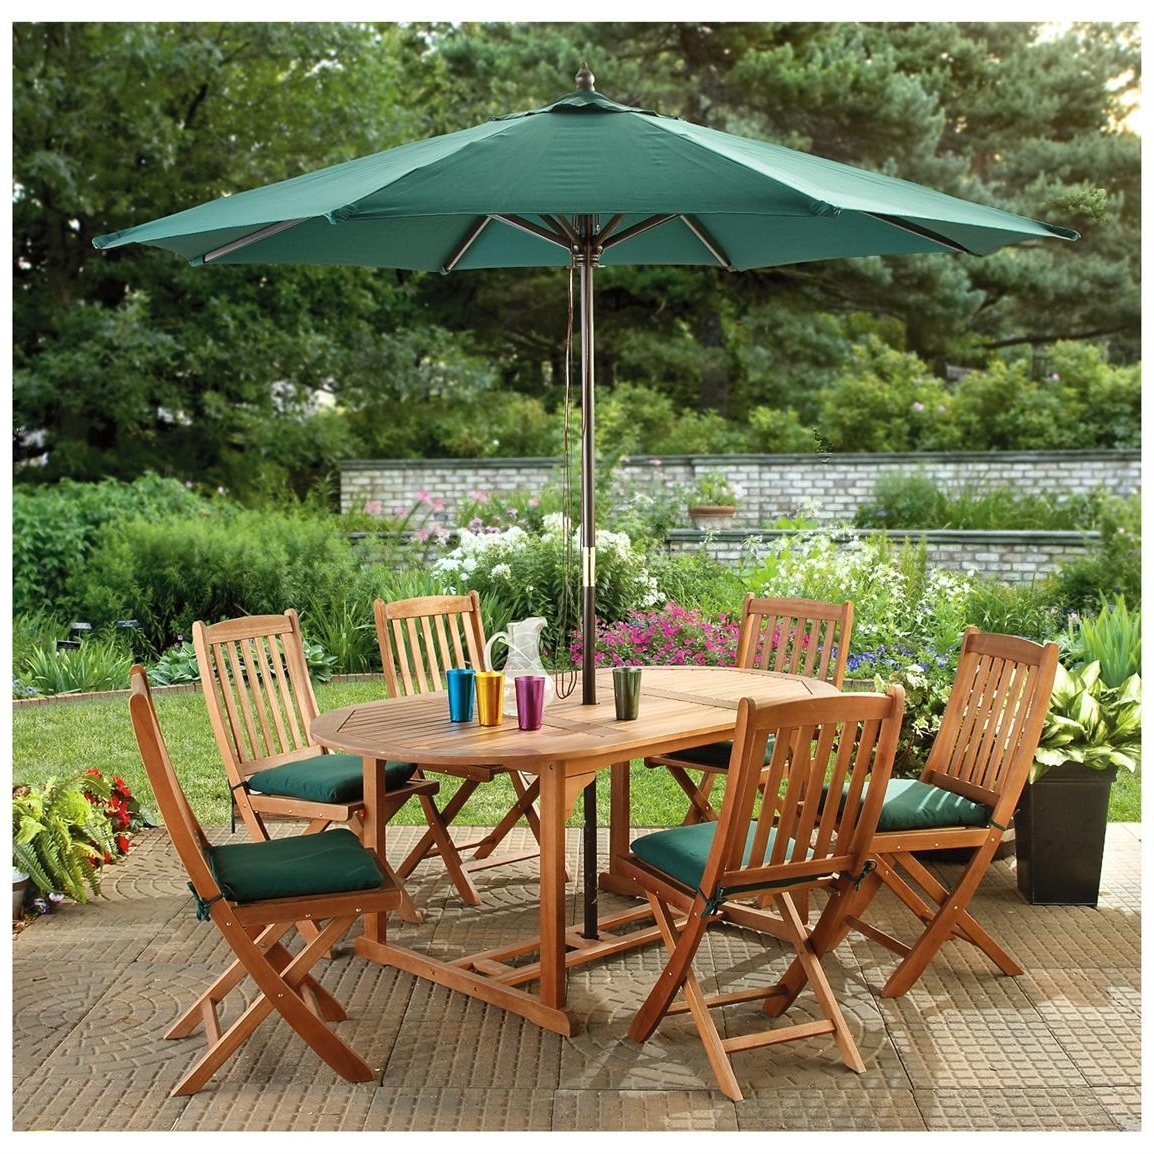 Best And Newest Patio: Amazing Small Patio Table With Umbrella Outdoor Furniture Pertaining To Small Patio Tables With Umbrellas (View 2 of 20)